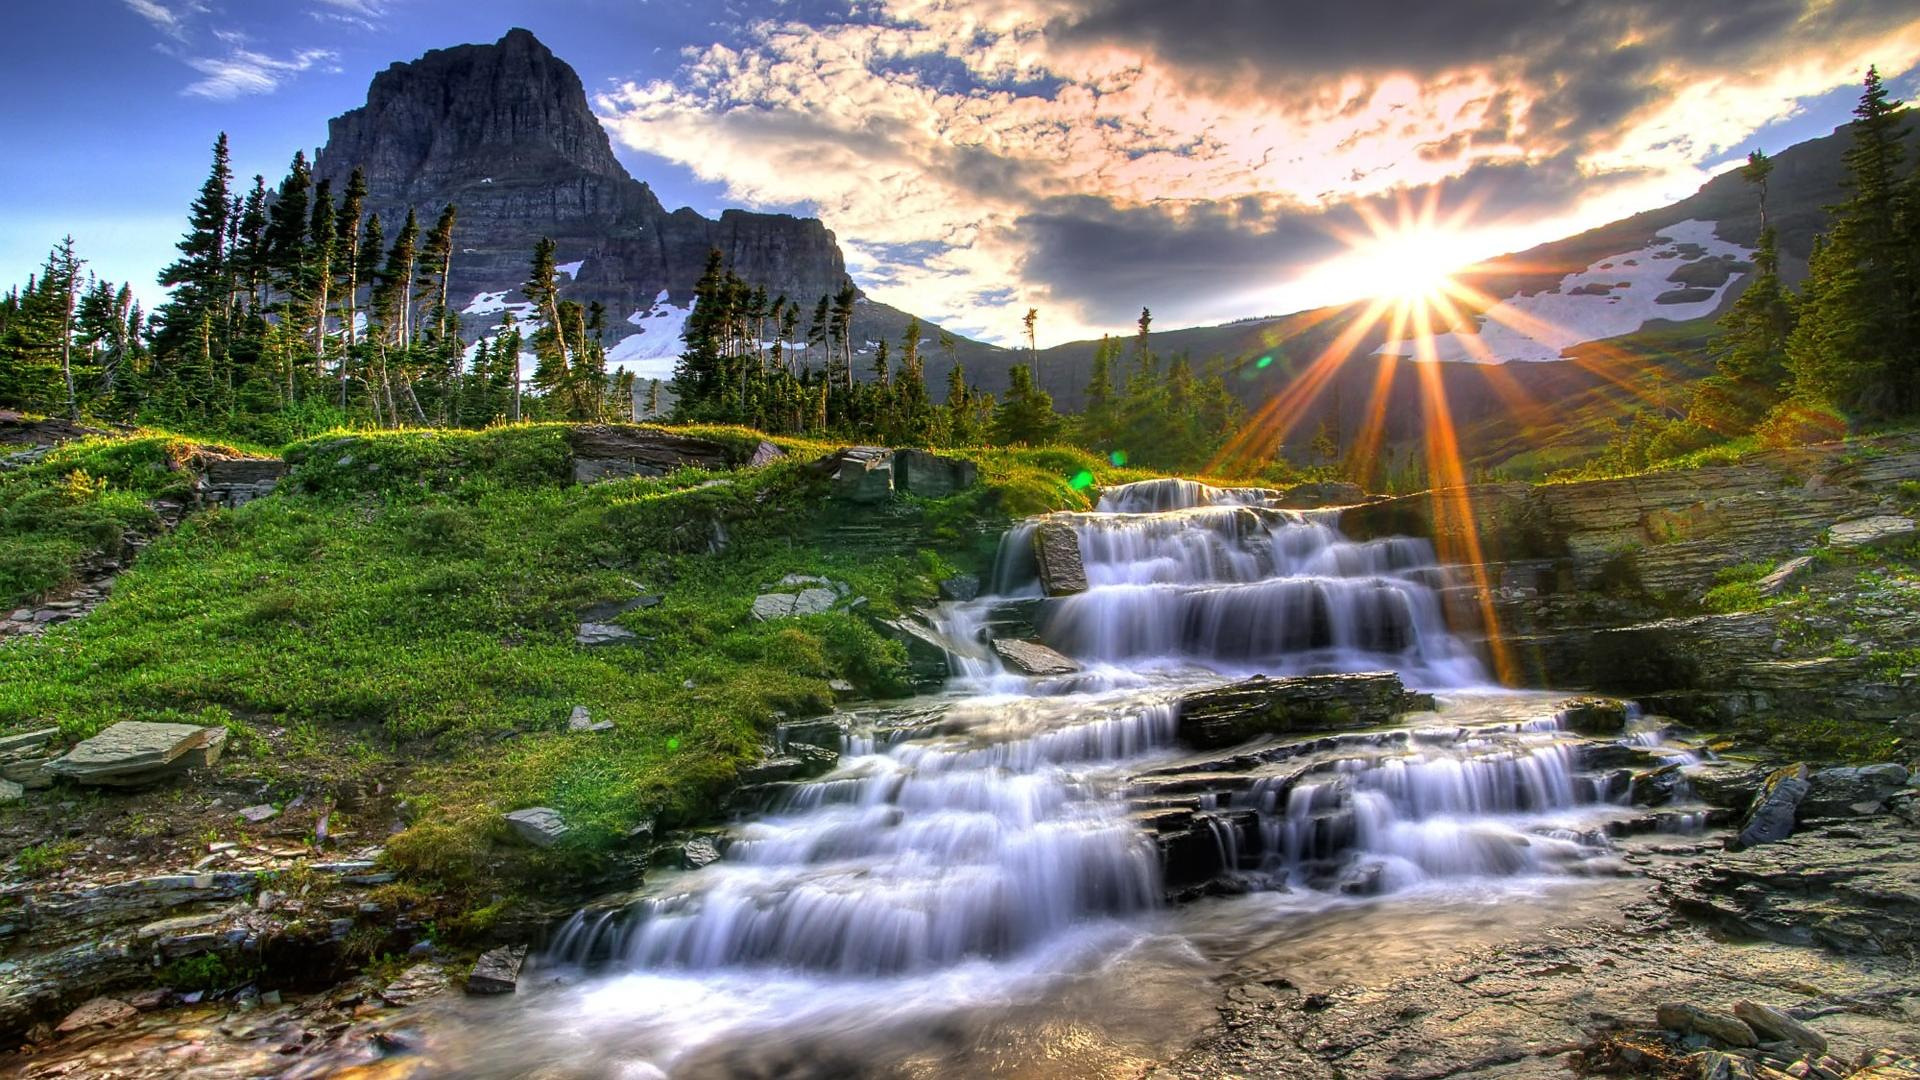 Nature and landscape wallpapers wallpapersafari - Nature background 1920x1080 ...